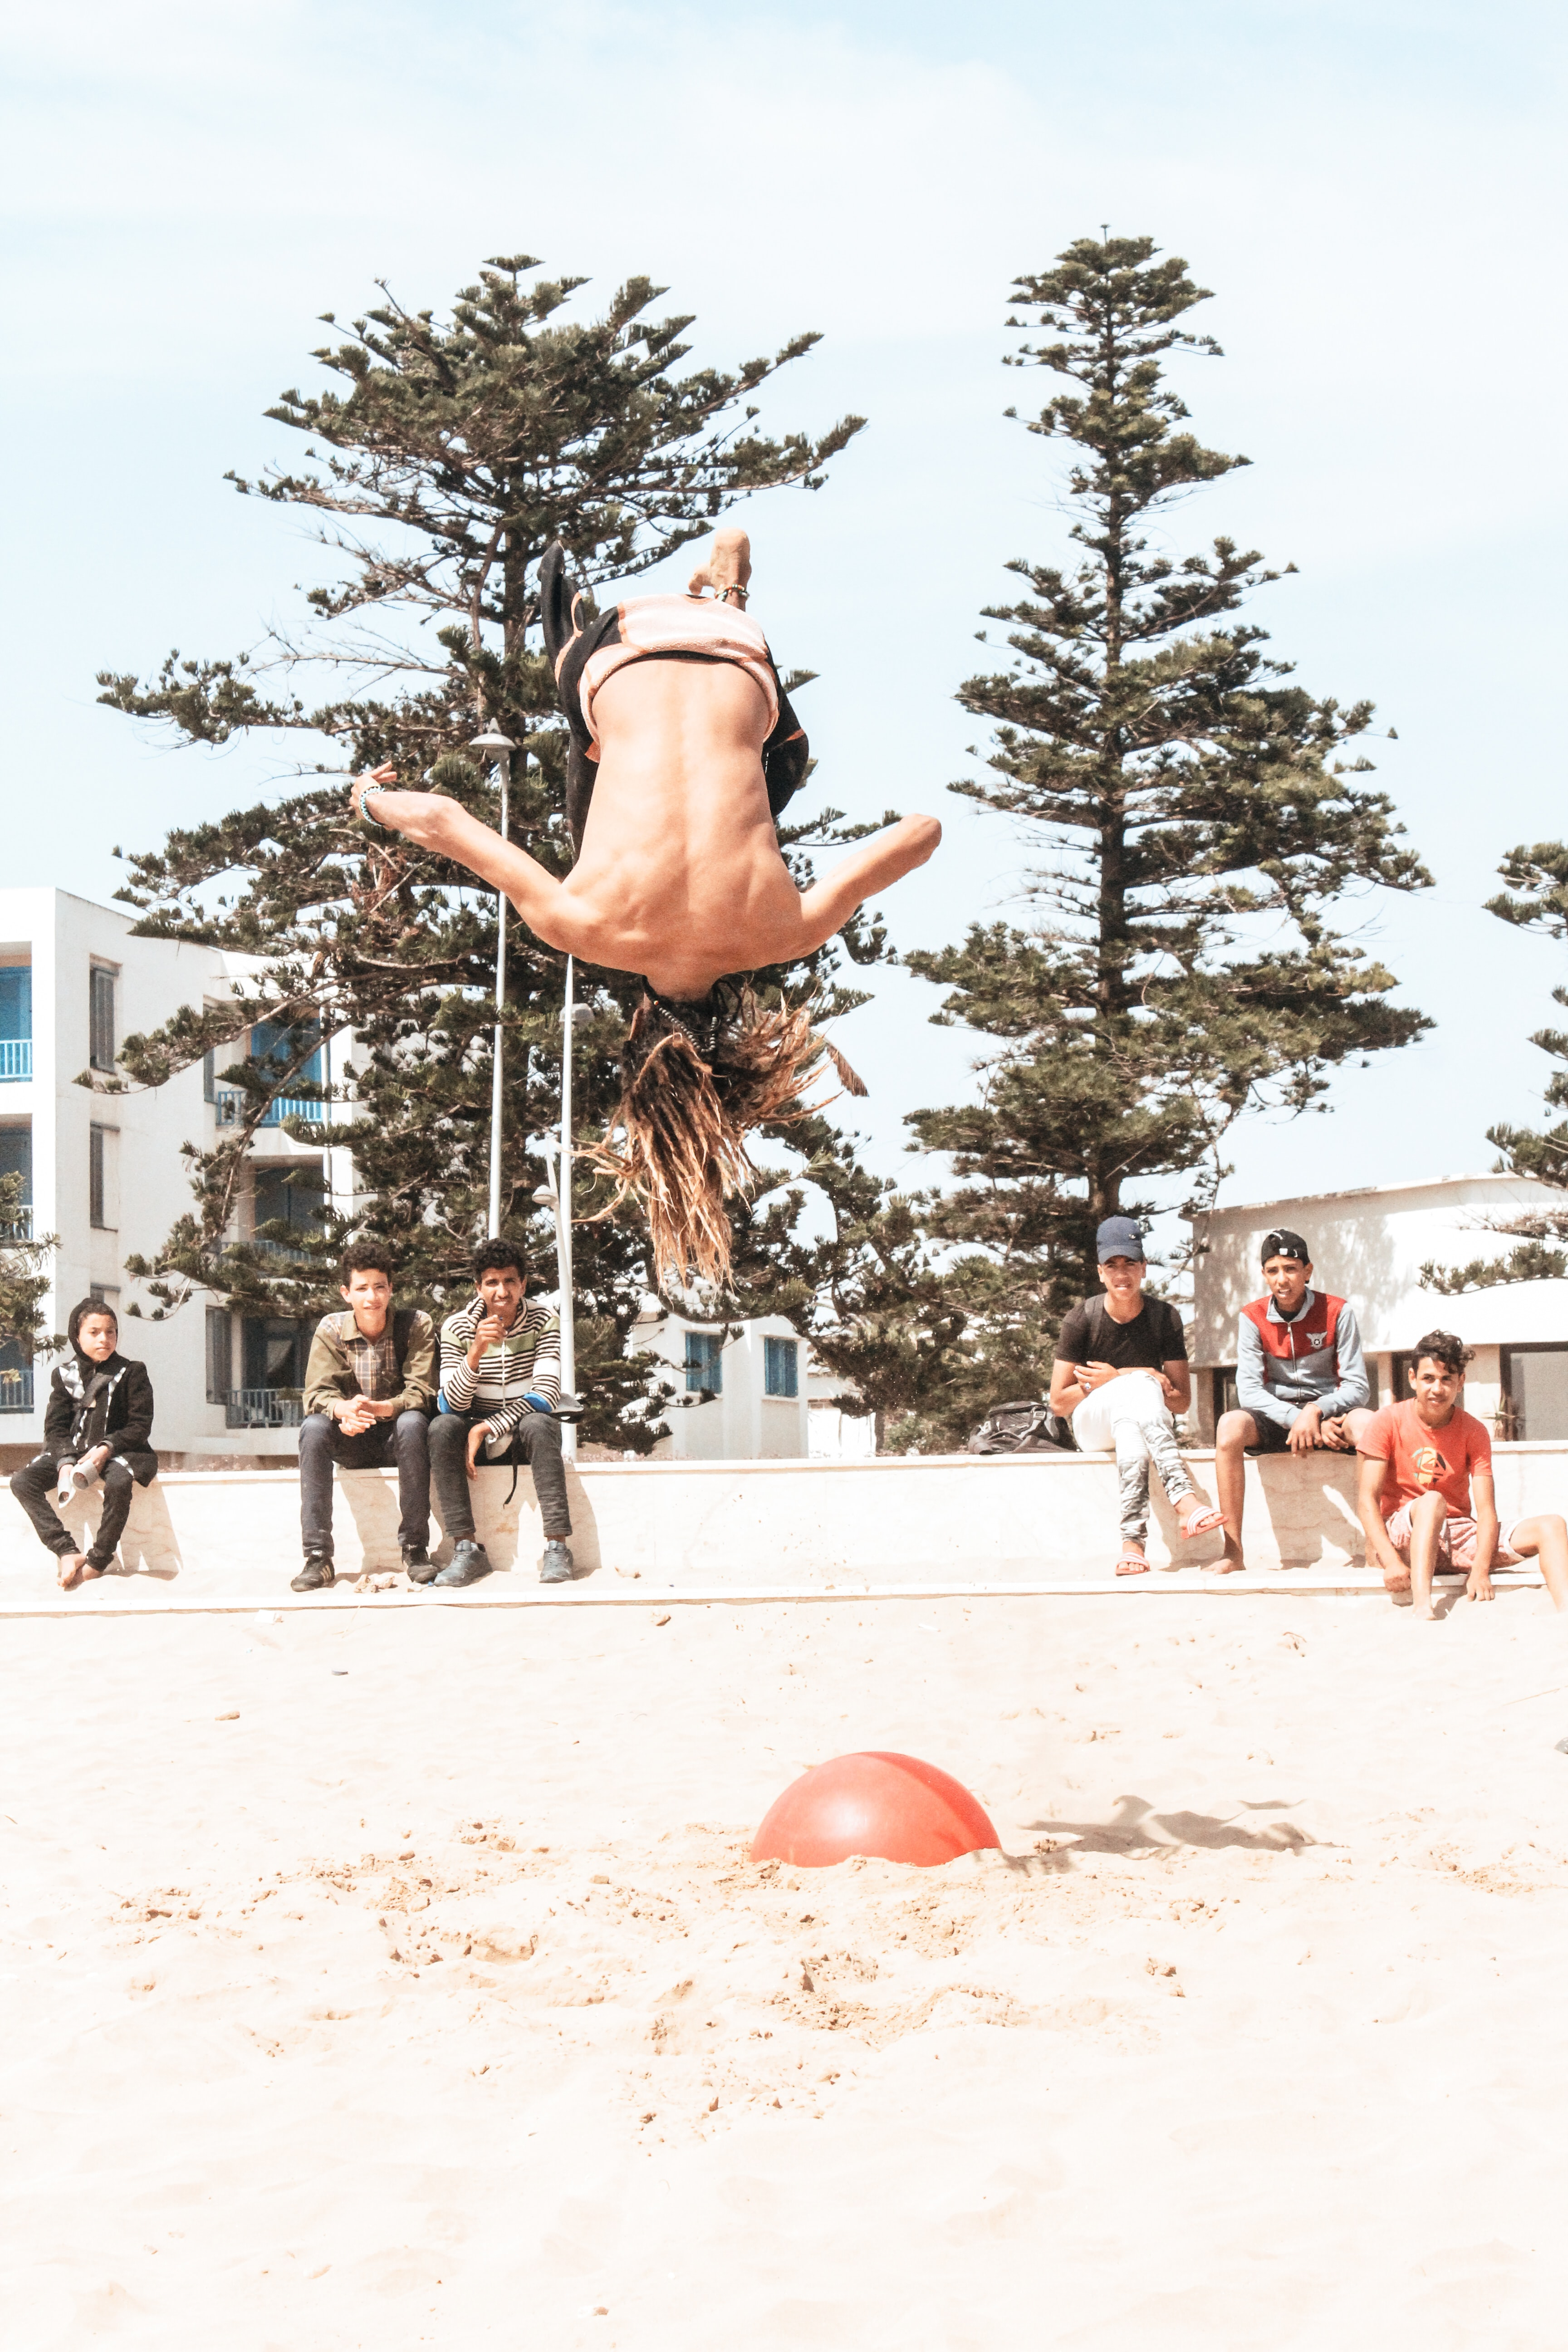 person tumbling on sand during daytime